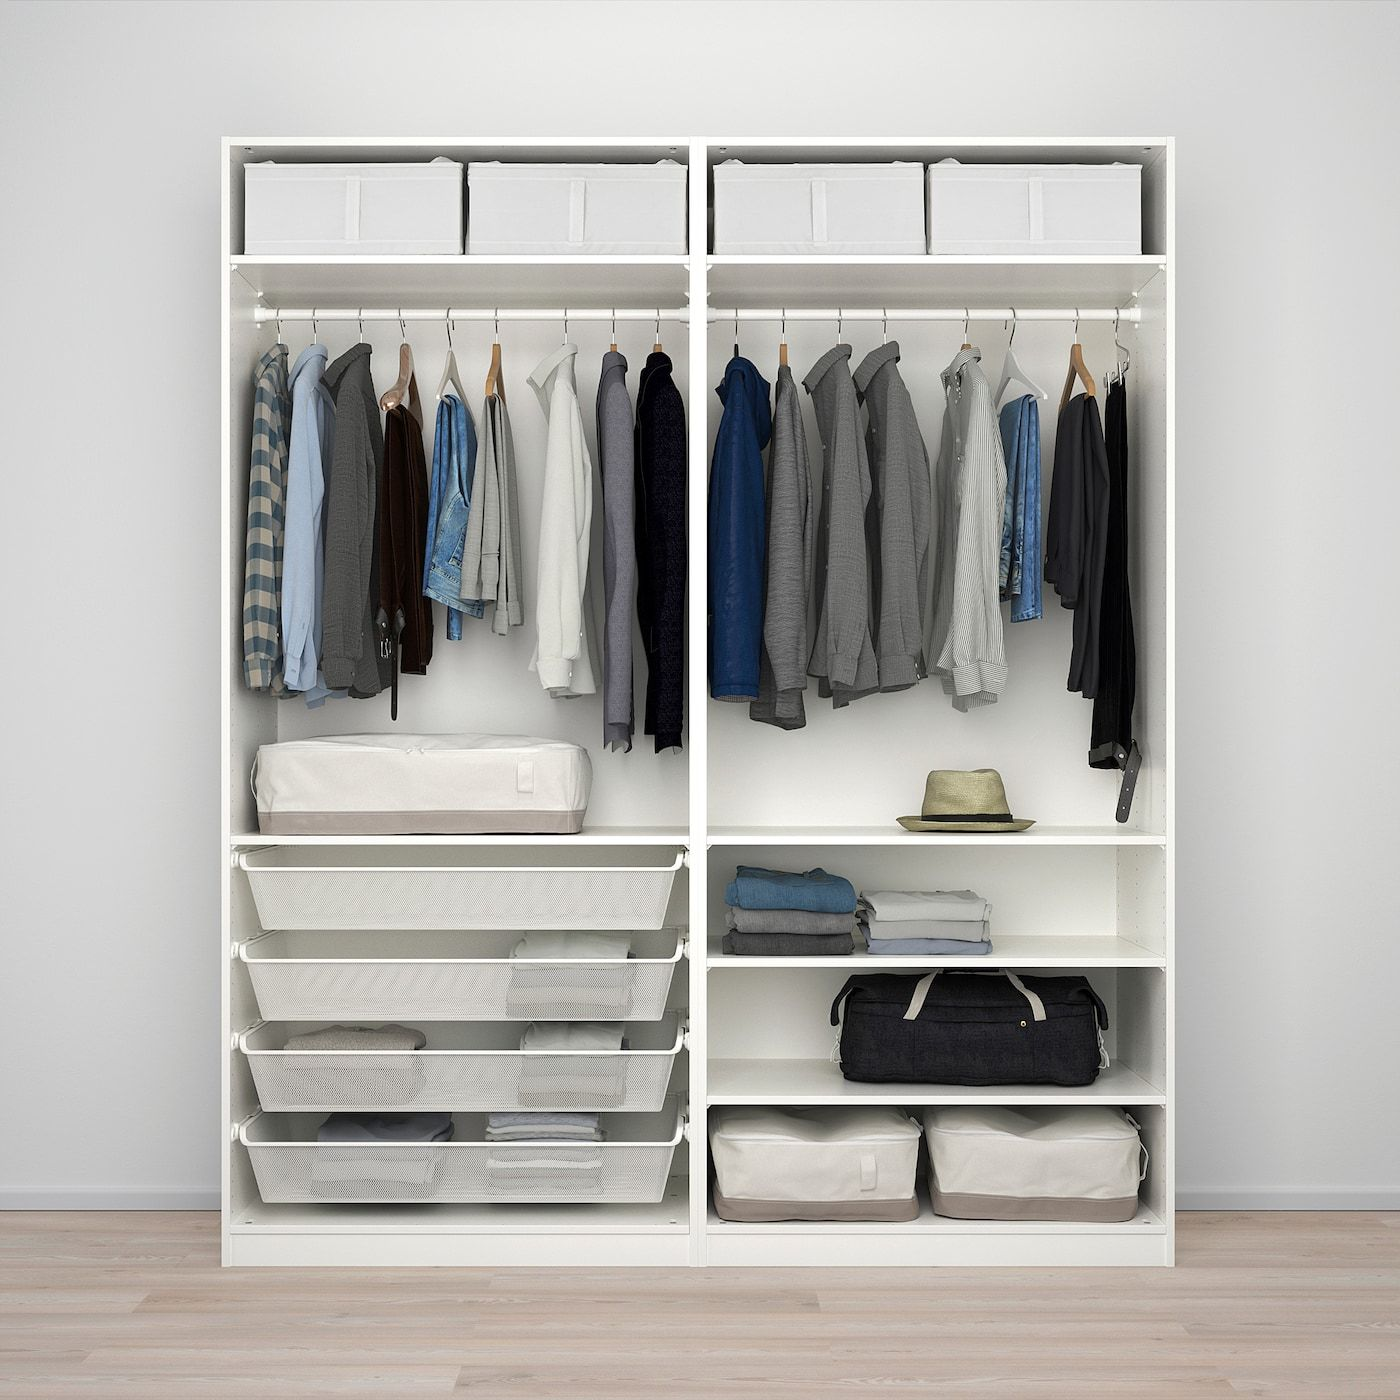 Planner Guardaroba Pax Ikea.Ikea Pax Wardrobe White Nykirke Frosted Glass Check Pattern